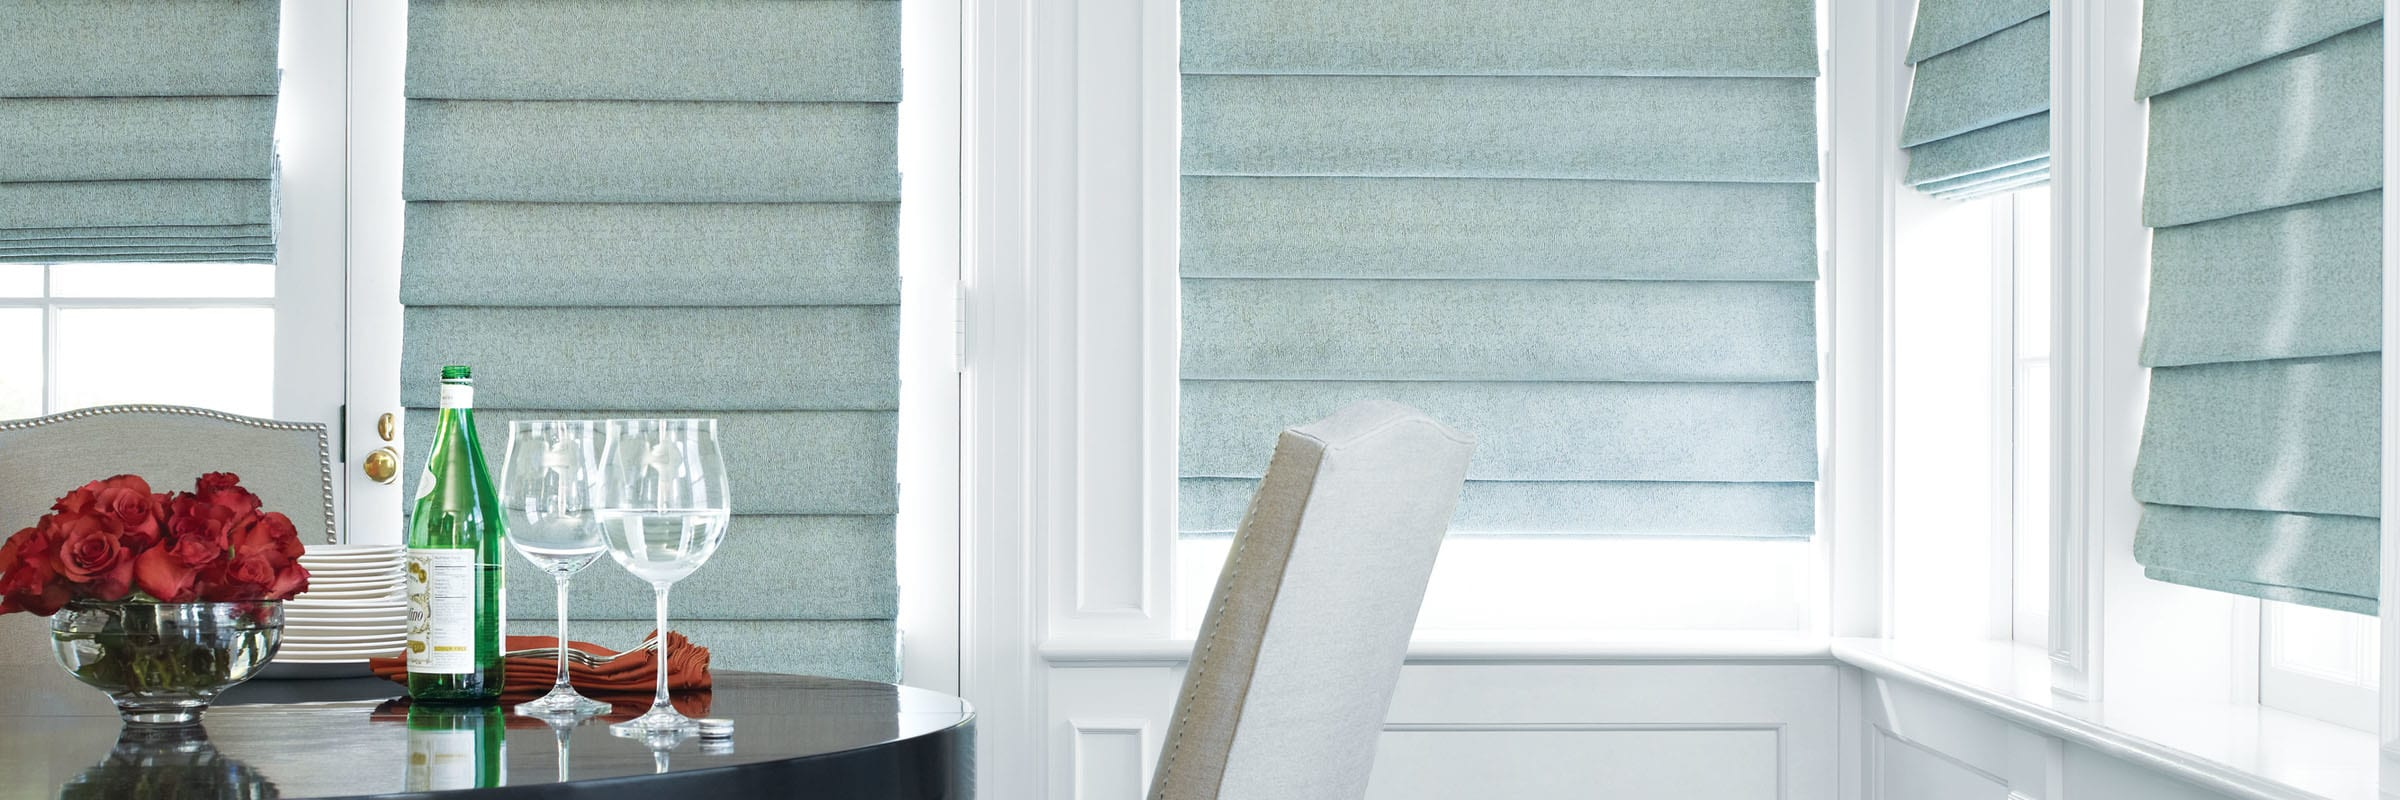 Luminette® Privacy Sheers For wide windows and sliding doors, our Luminette® Privacy Sheers come in an array of sheer and drapery-like fabrics for unlimited light-control and privacy options. Learn more about Luminette® Privacy Sheers.